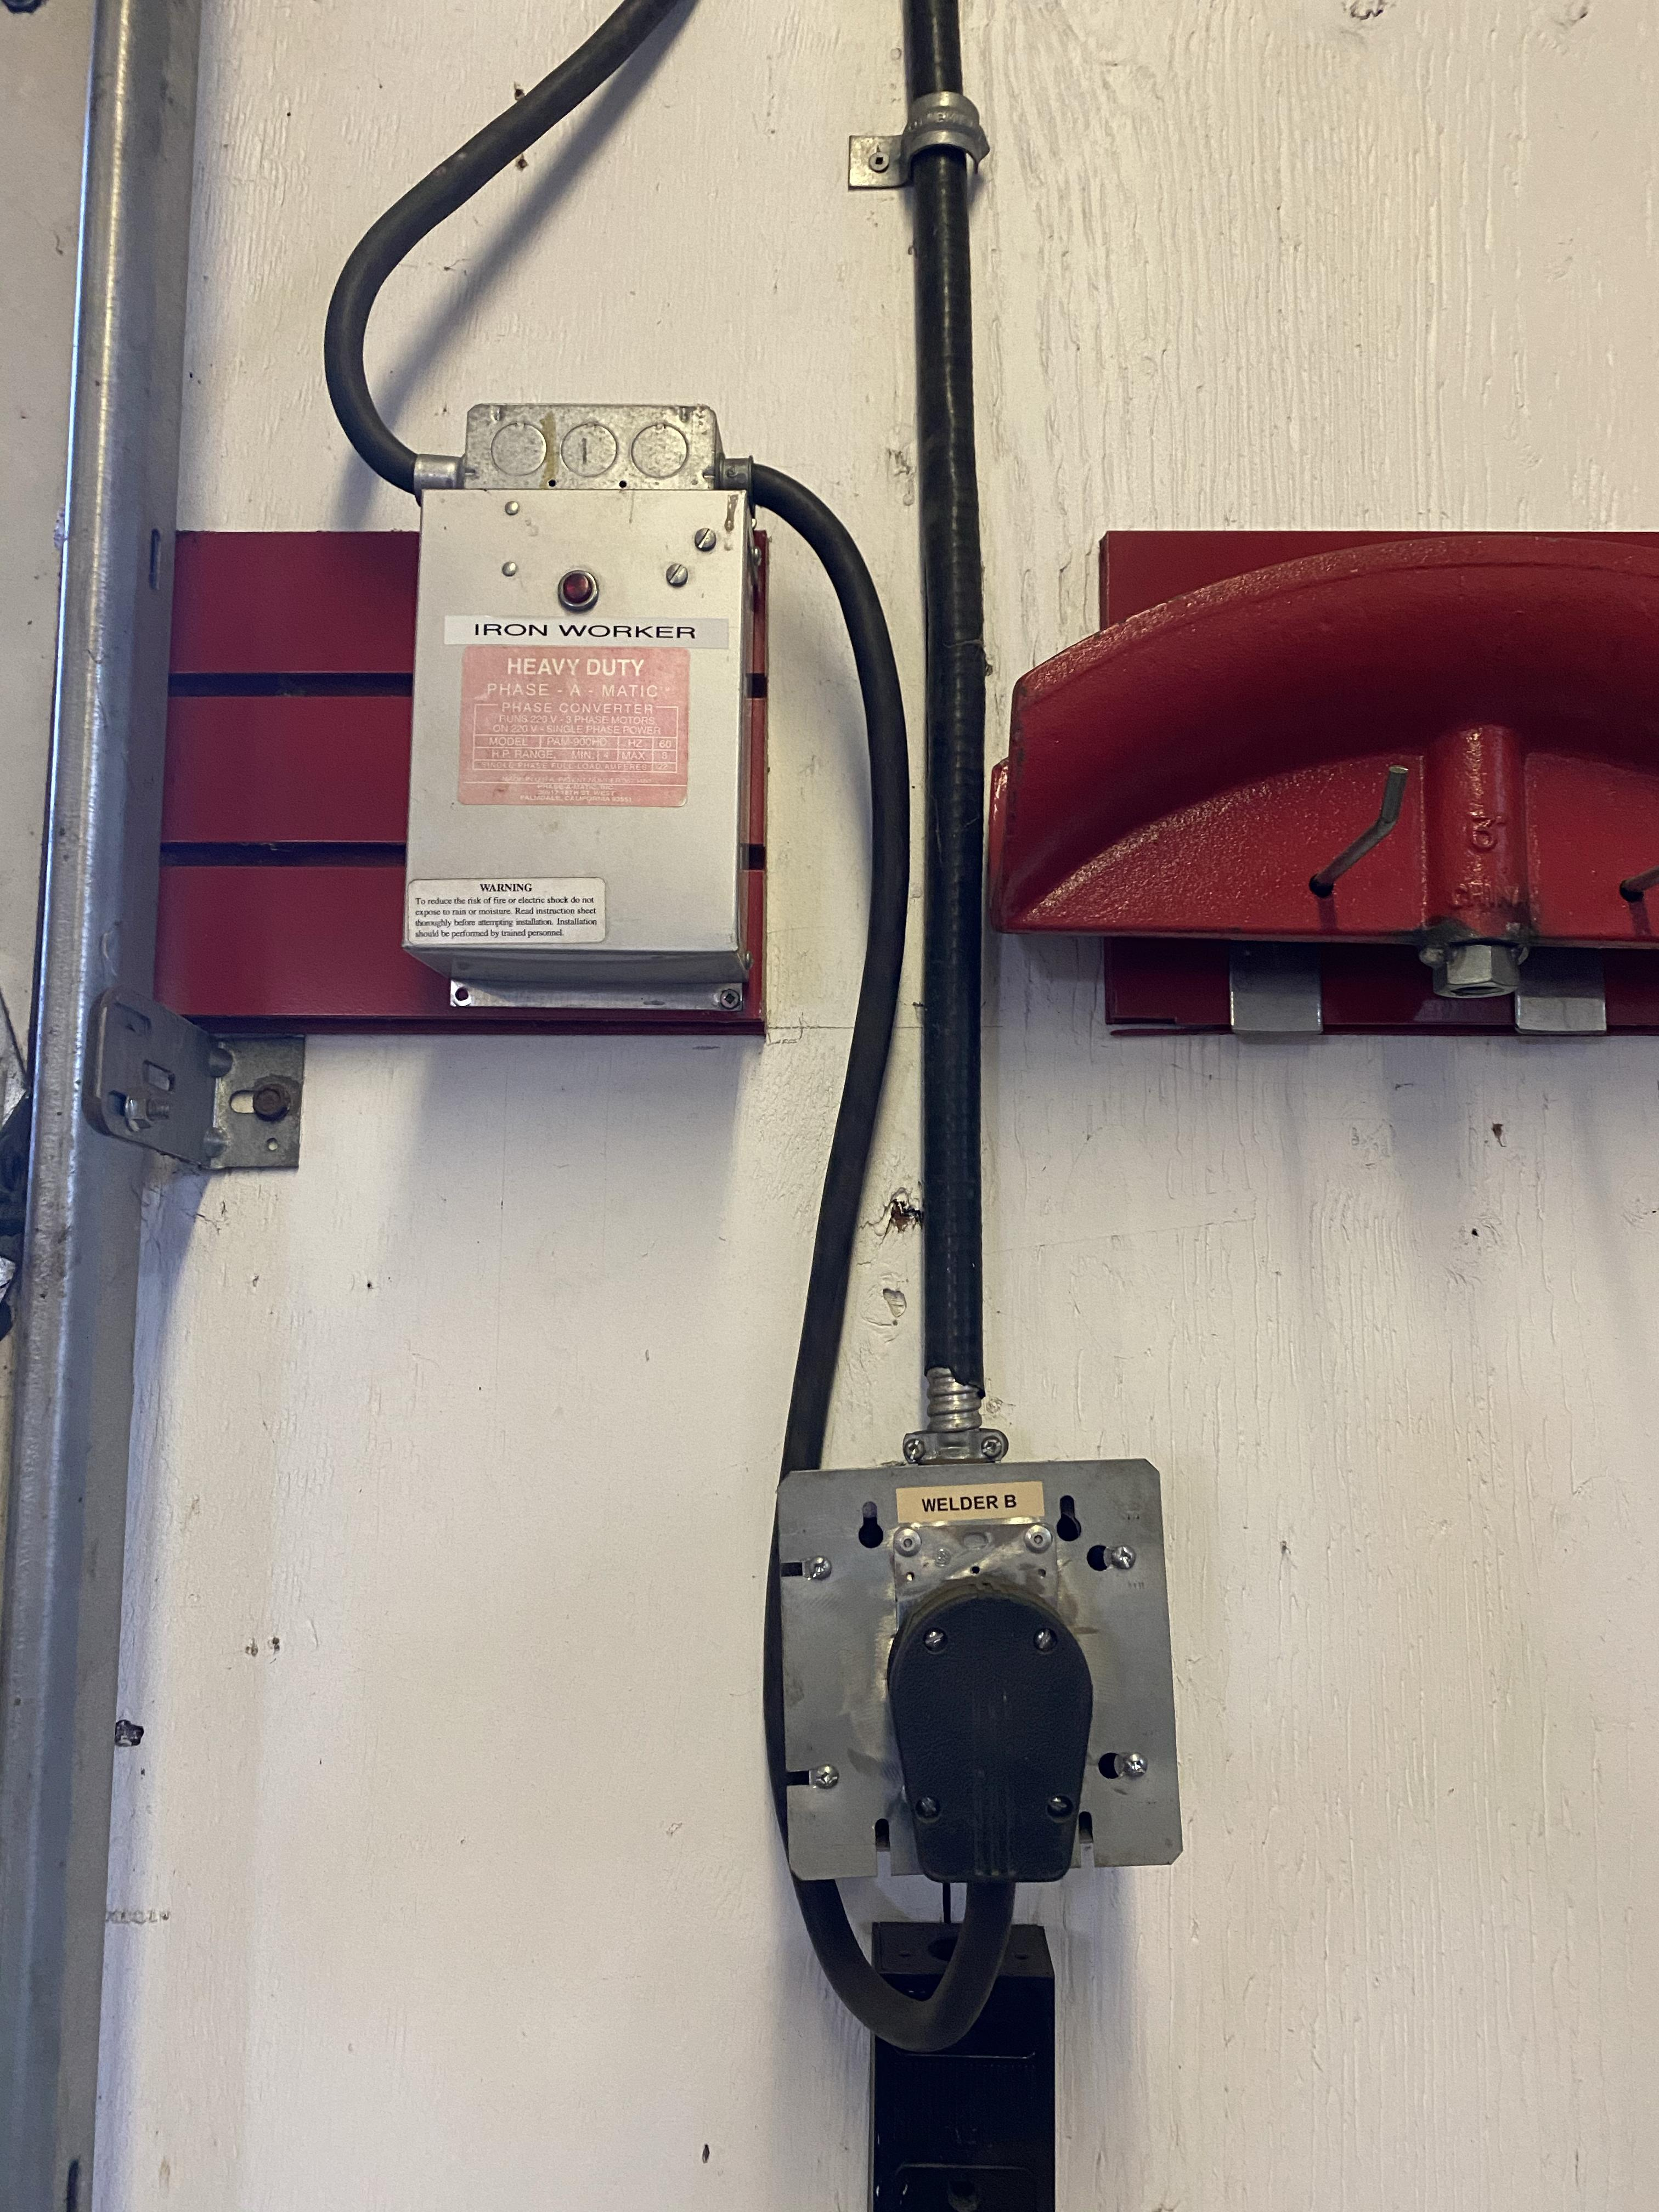 Scotchman FI-51 ironworker and 3phase to 1phase? - The Garage Journal Board | Elec Wiring Diagram For Mubea Ironworker |  | The Garage Journal